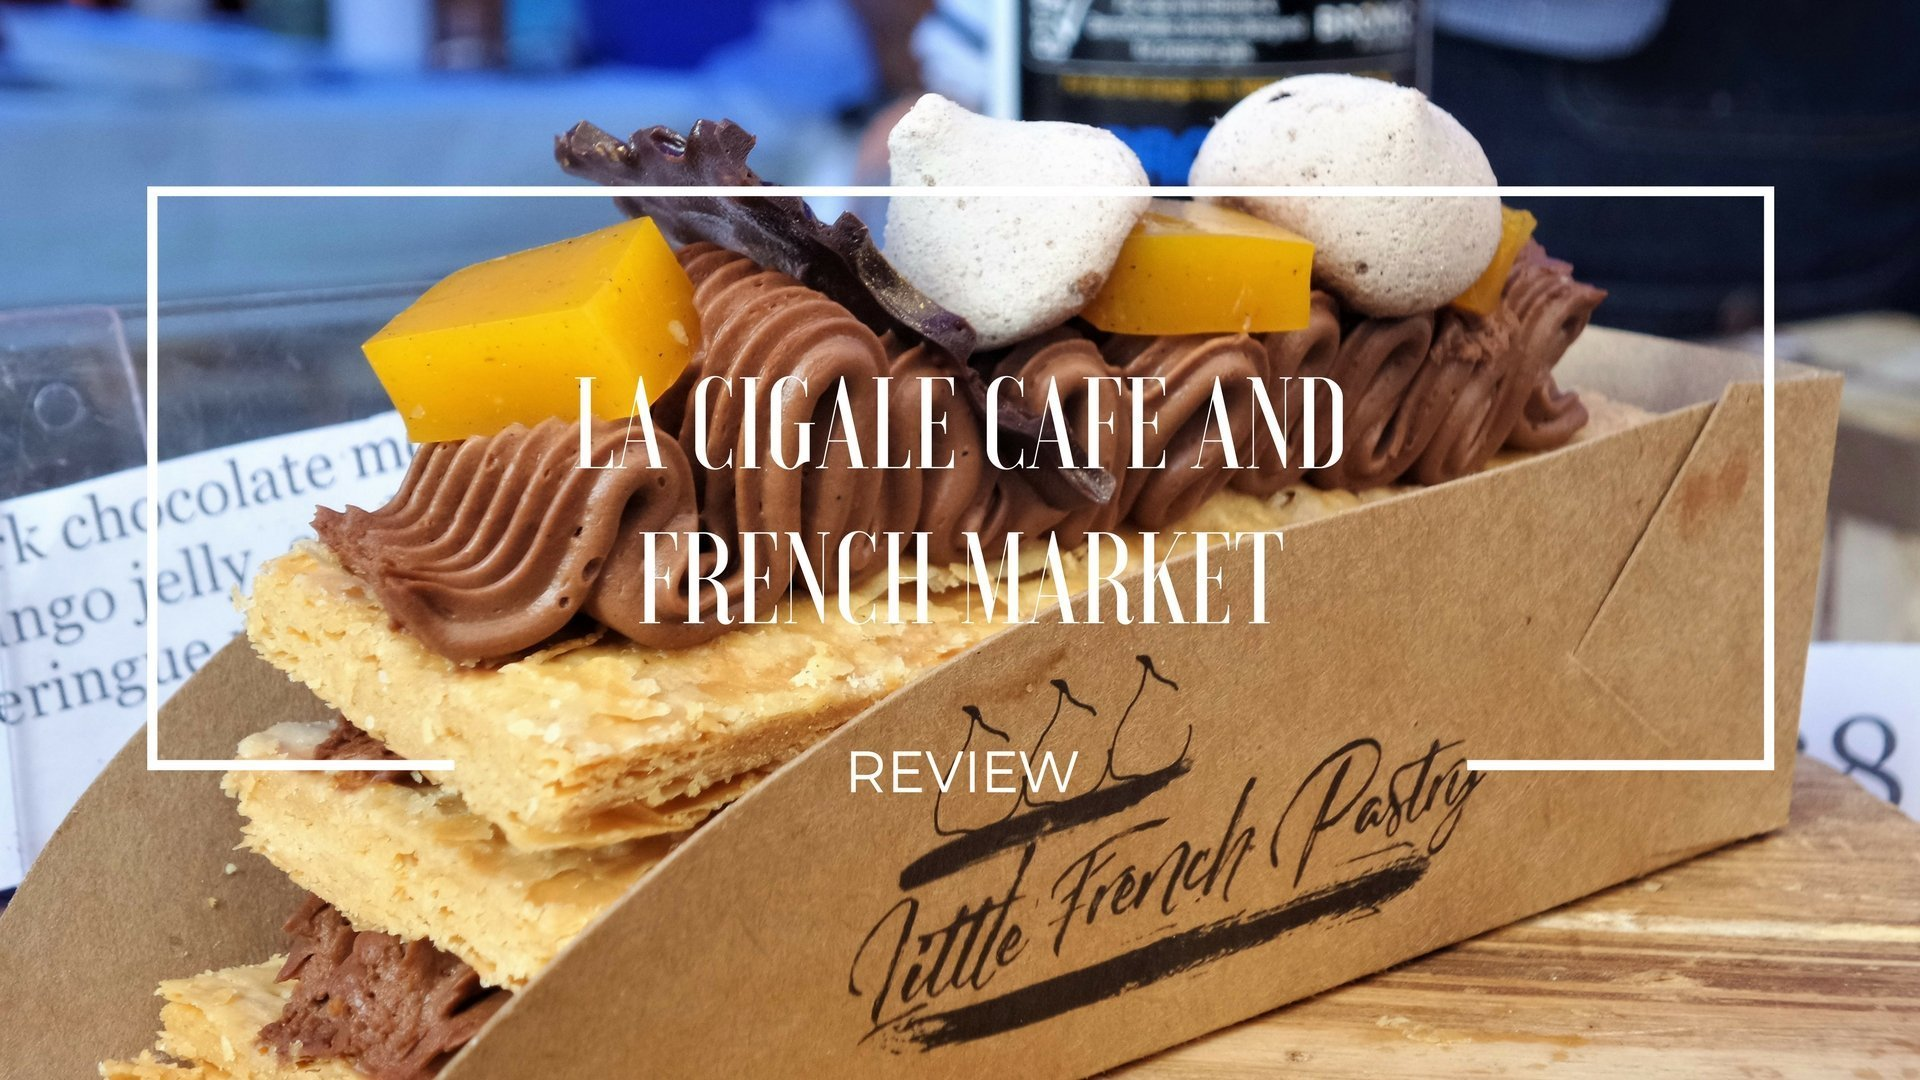 La Cigale Cafe and French Market Review